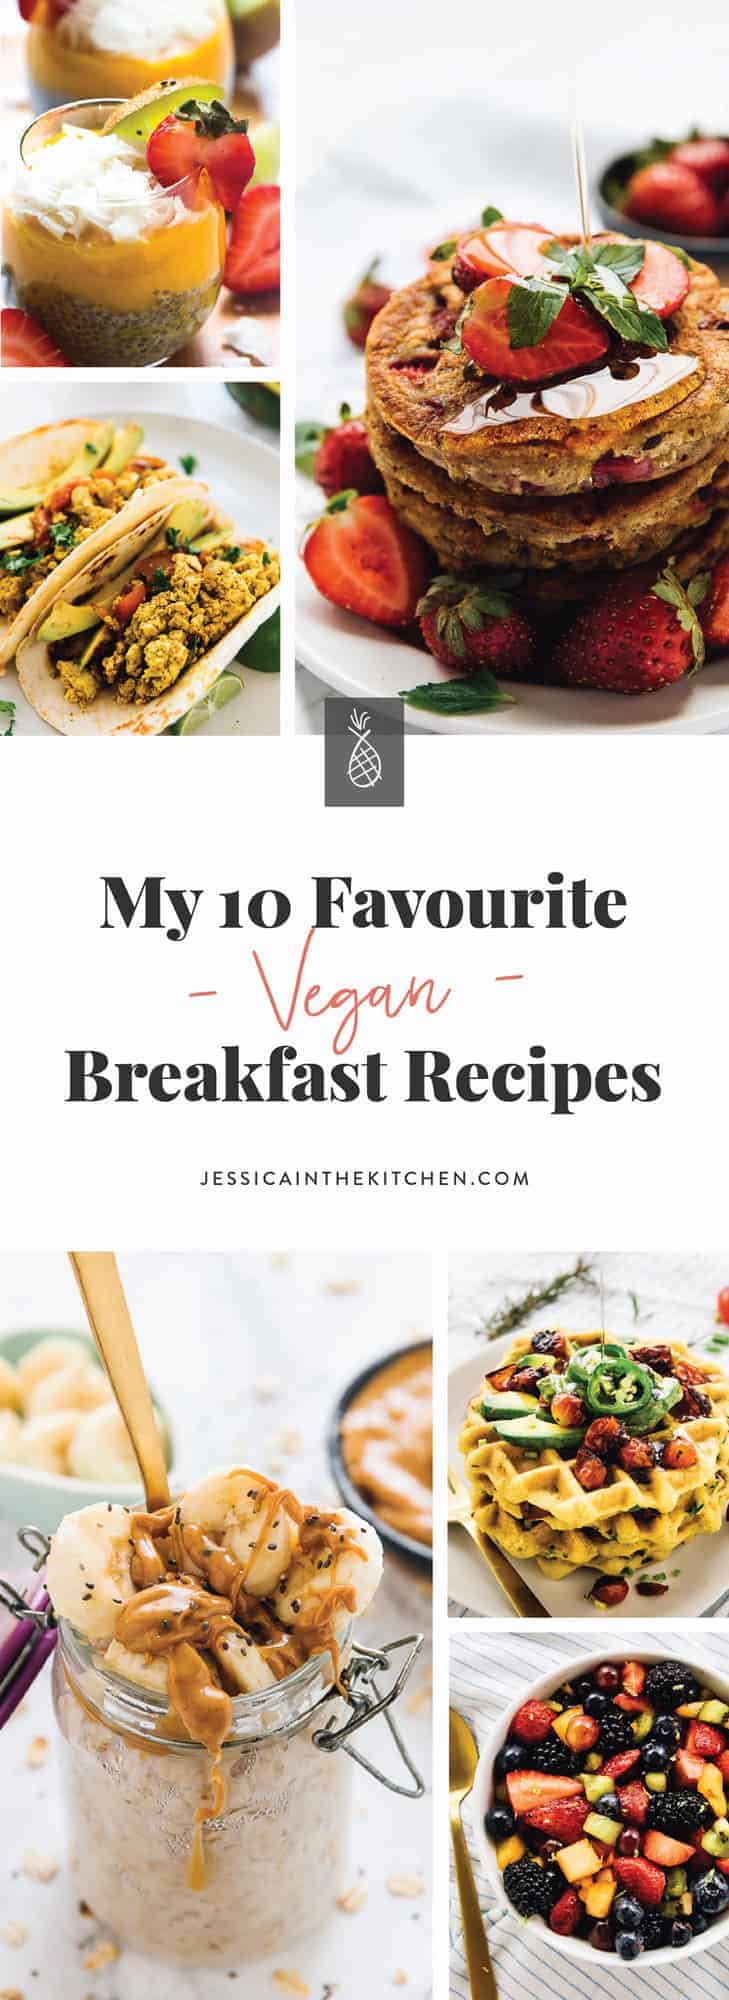 These are my 10 favourite vegan breakfast recipes! Everything from pancakes to waffles to vegan scrambles, there are so many choices for everyone! via https://jessicainthekitchen.com